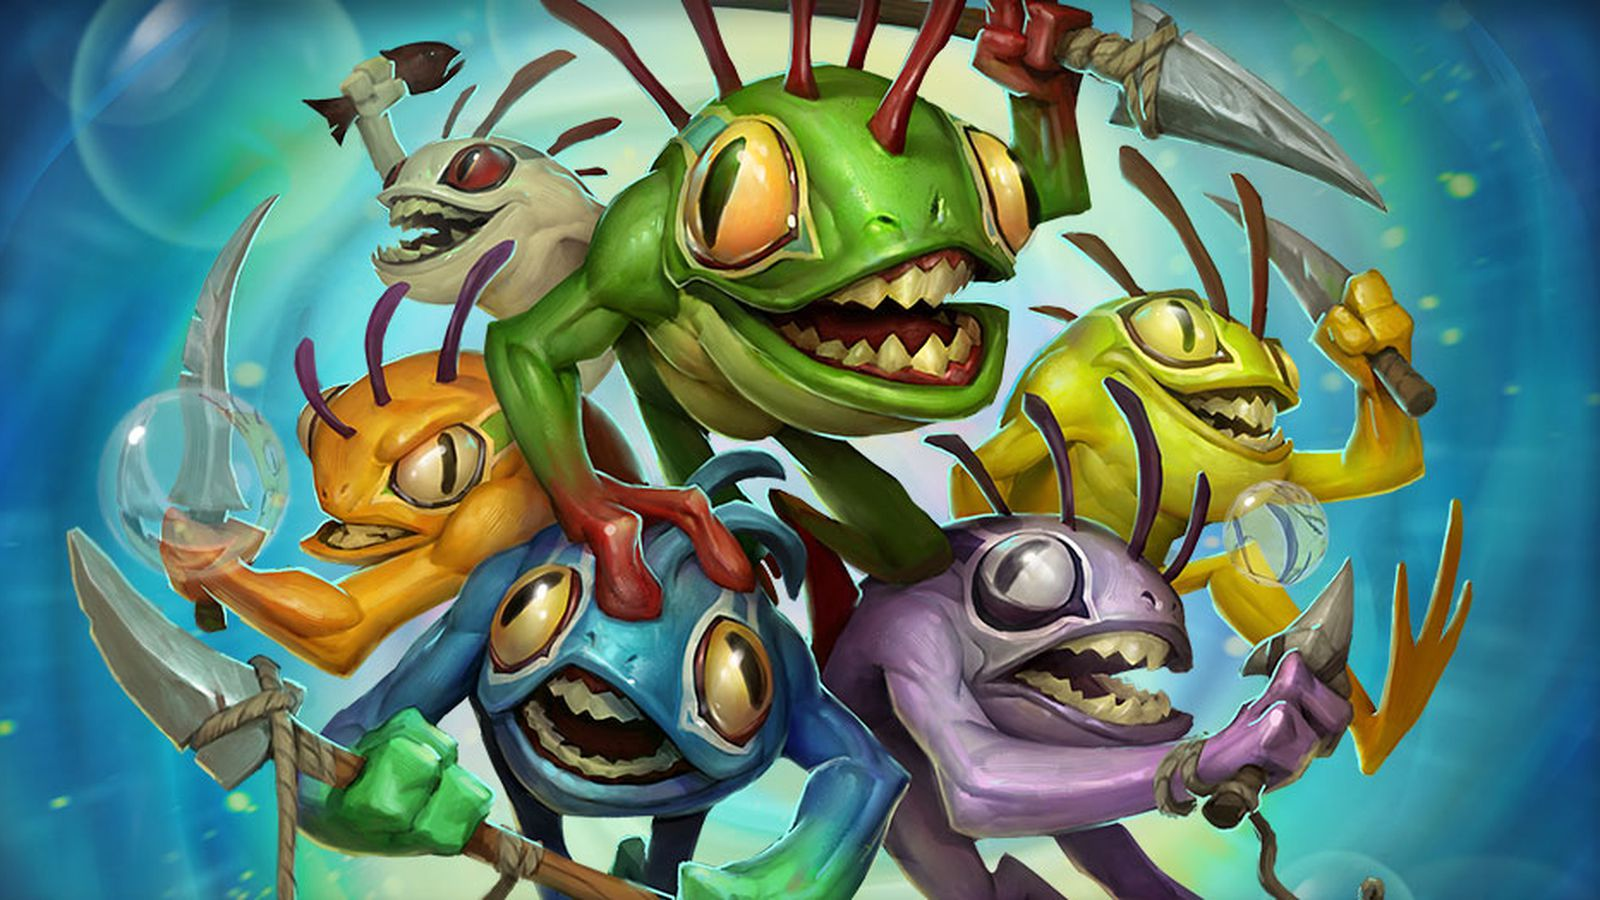 Hearthstone's new hero, a murloc shaman, is unlocked by recruiting friends to the game - Polygon